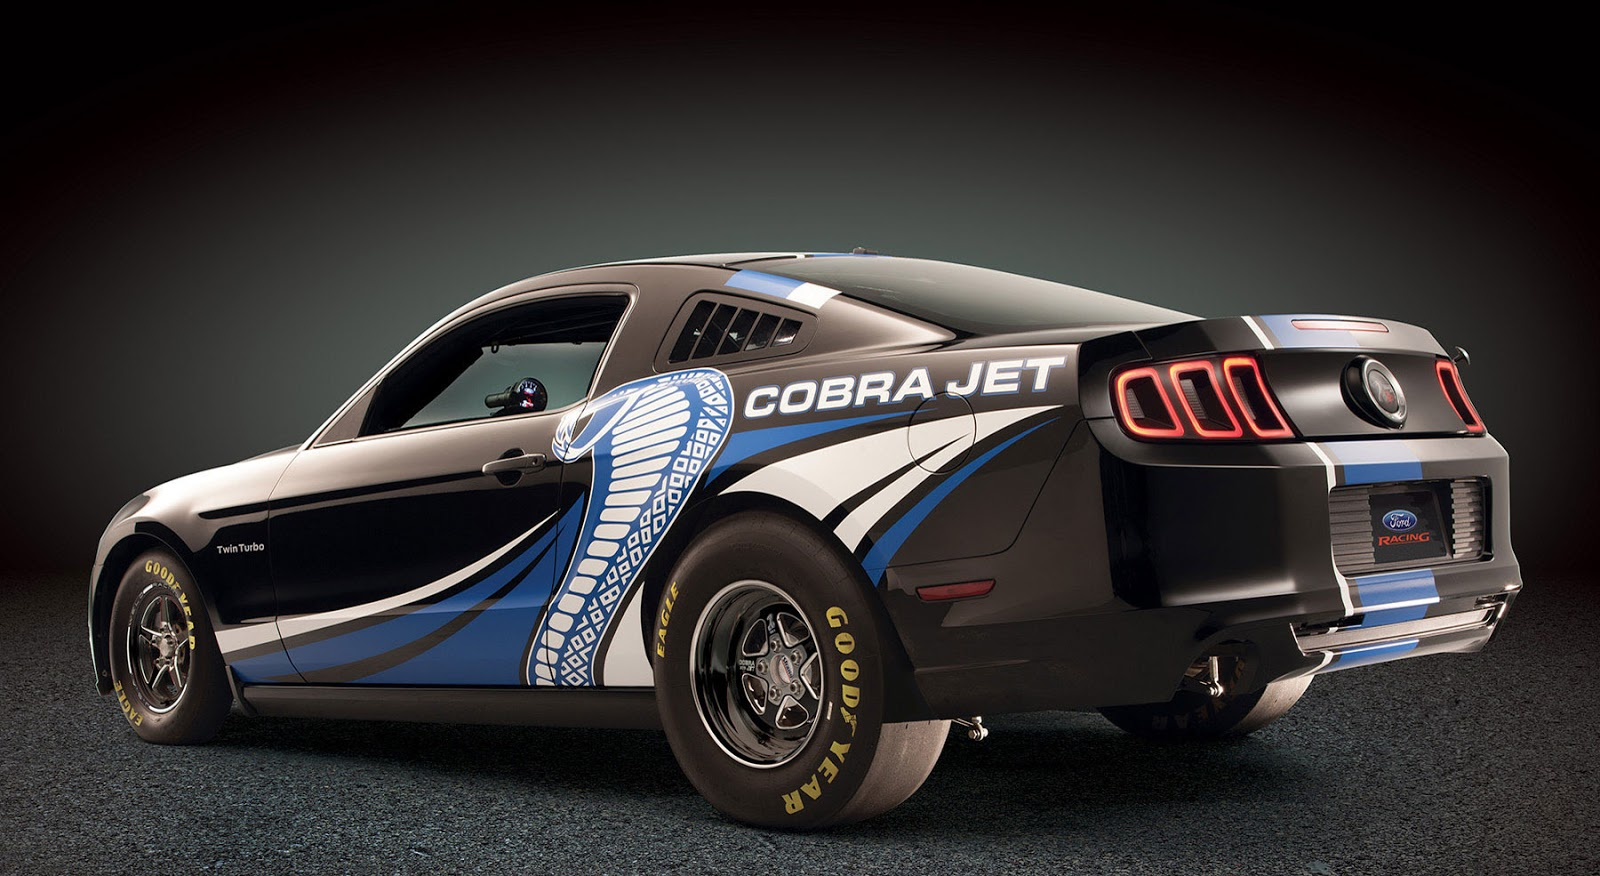 cars model 2013 2014 ford mustang cobra jet. Black Bedroom Furniture Sets. Home Design Ideas